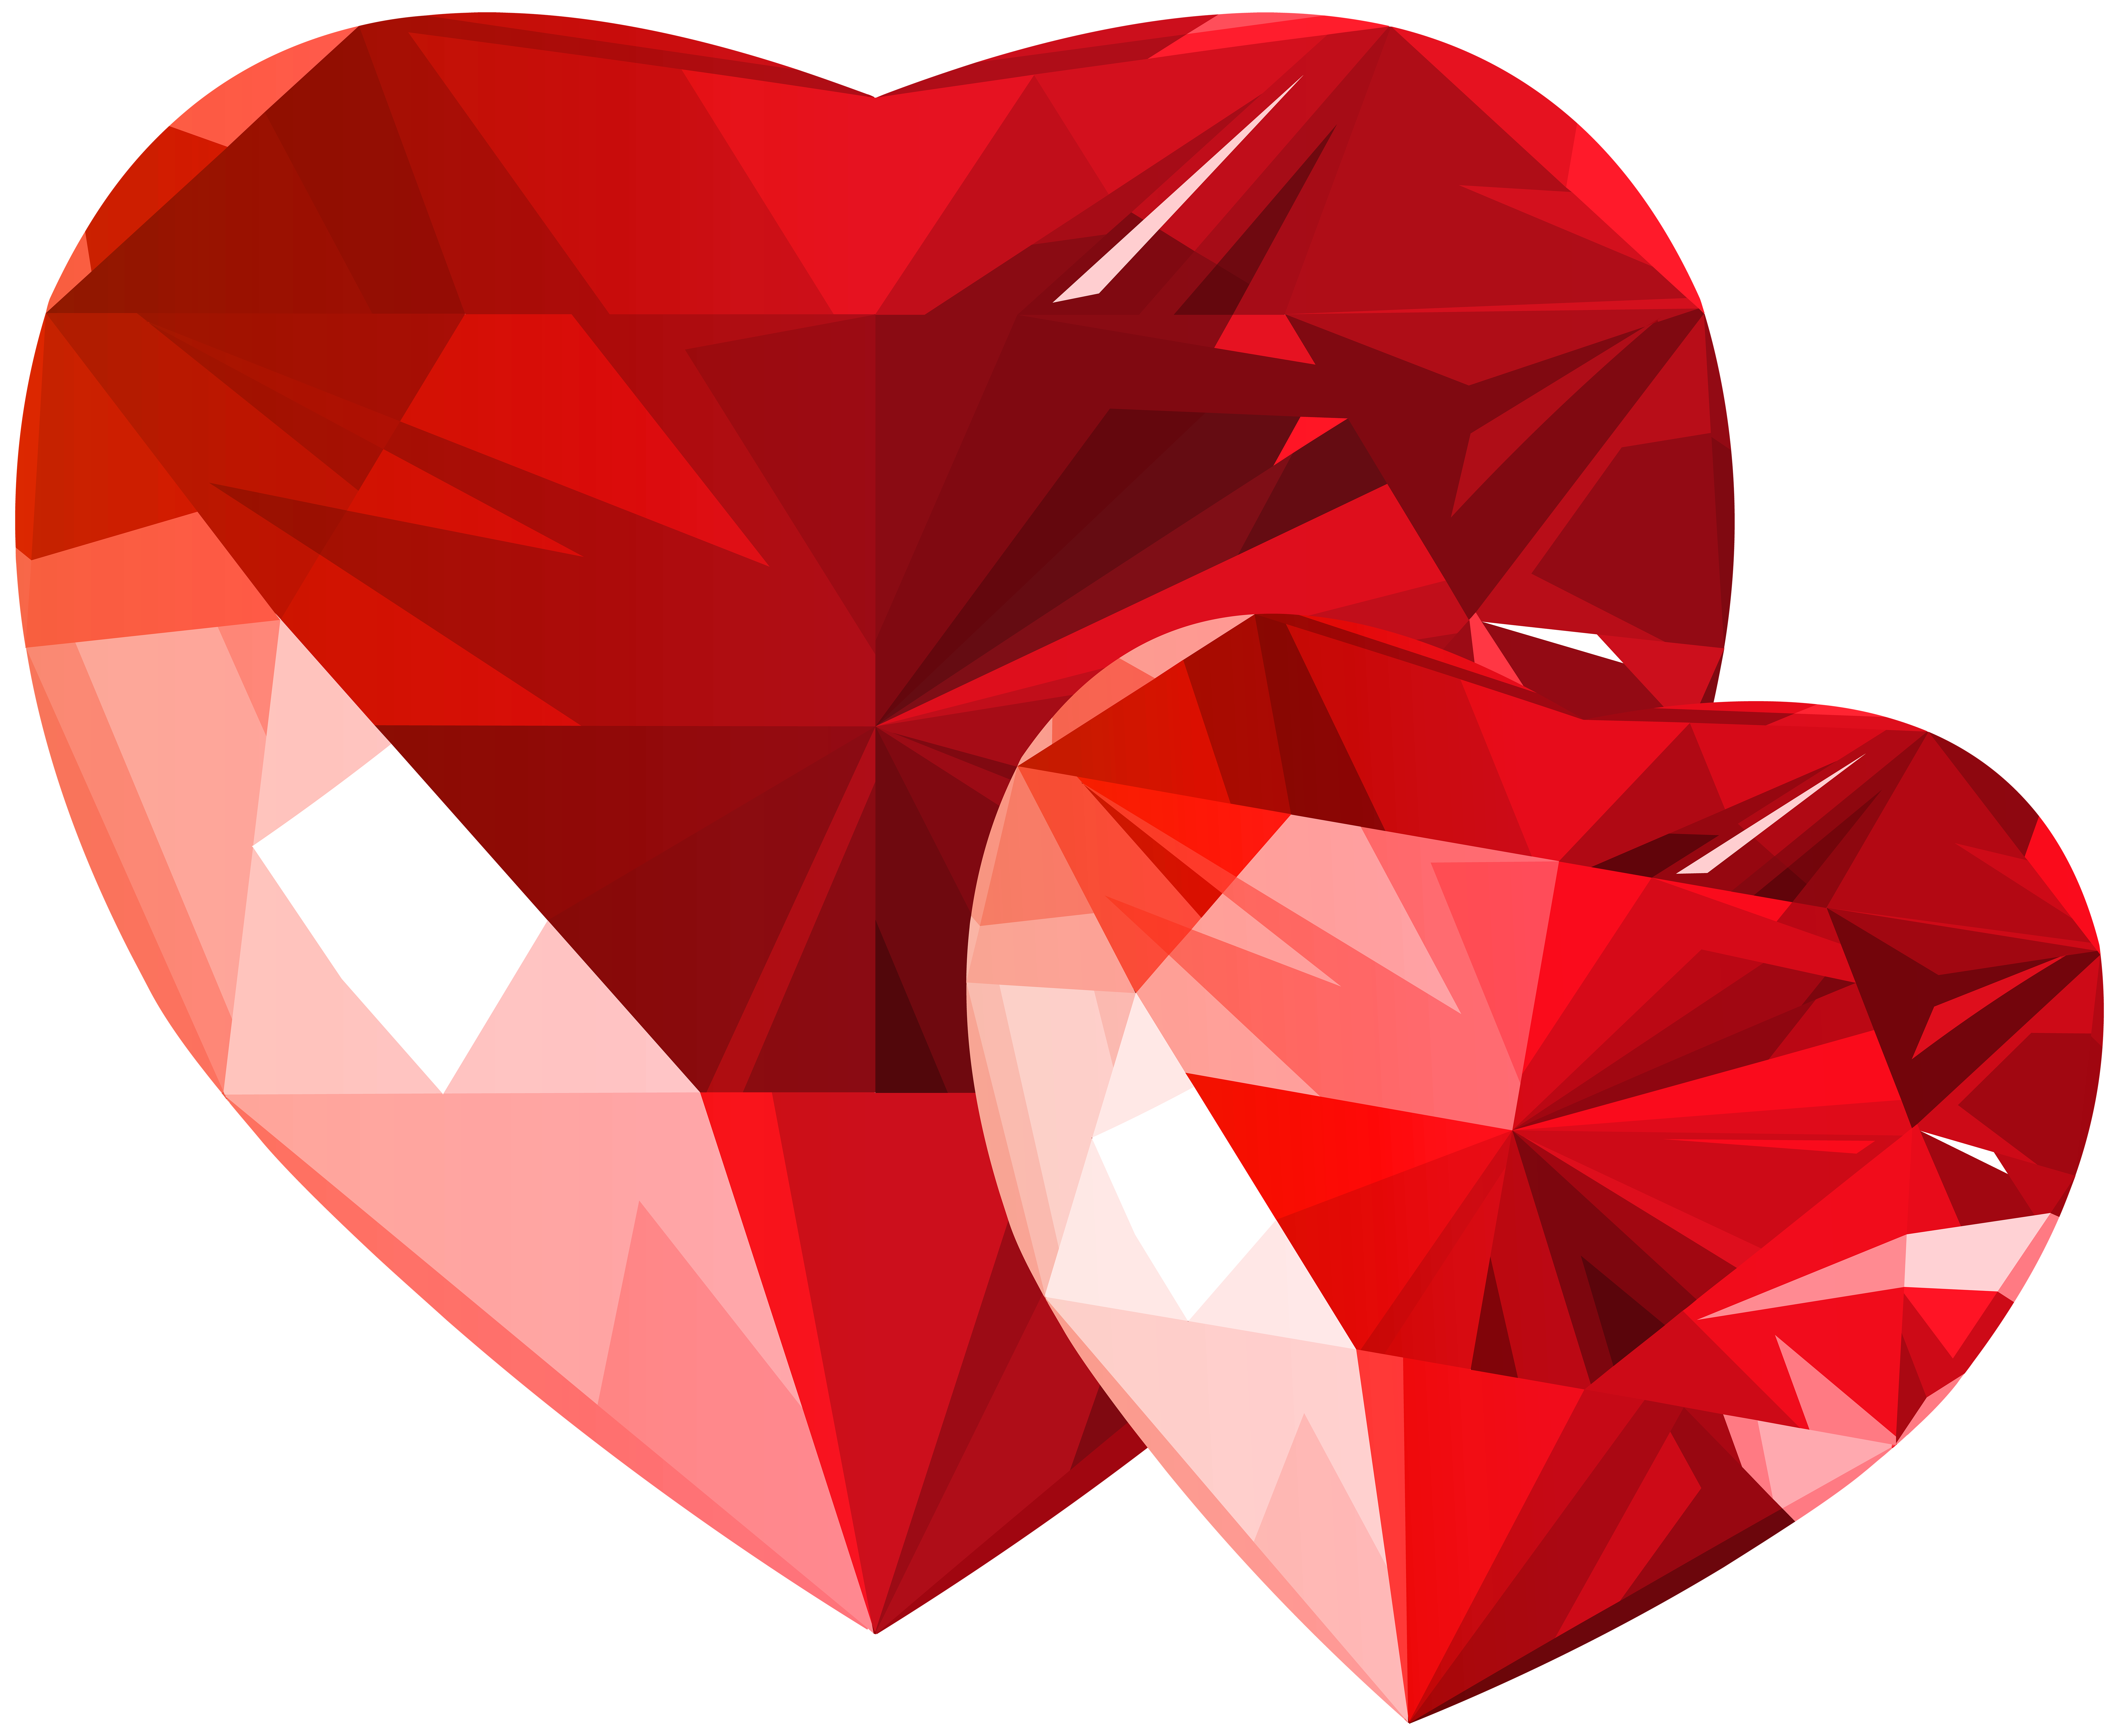 Clipart rock diamond. Hearts red transparent png